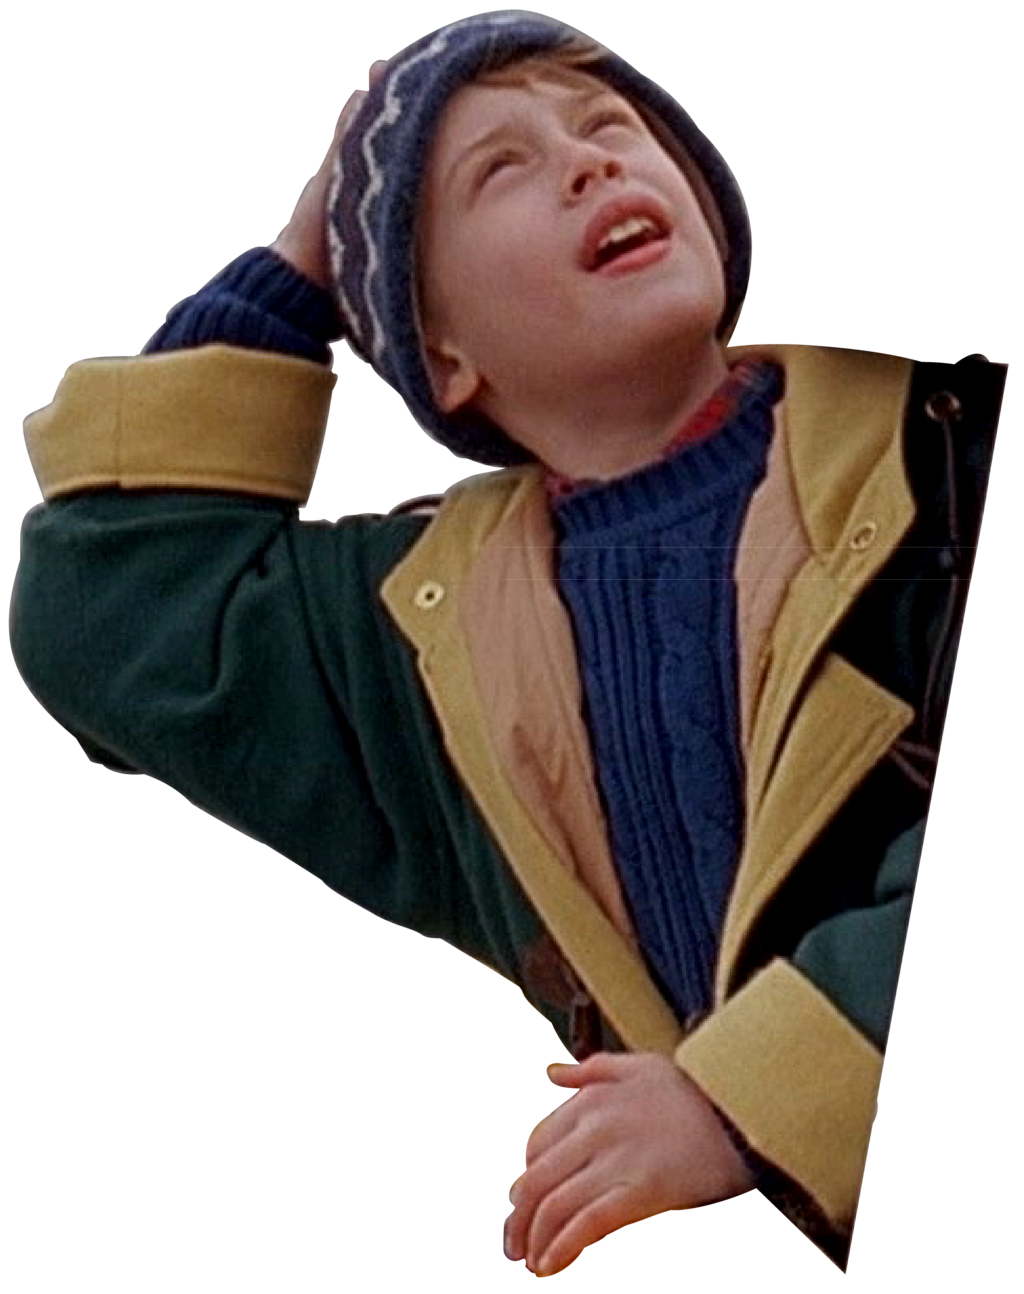 Home alone kid png. Lost in new york